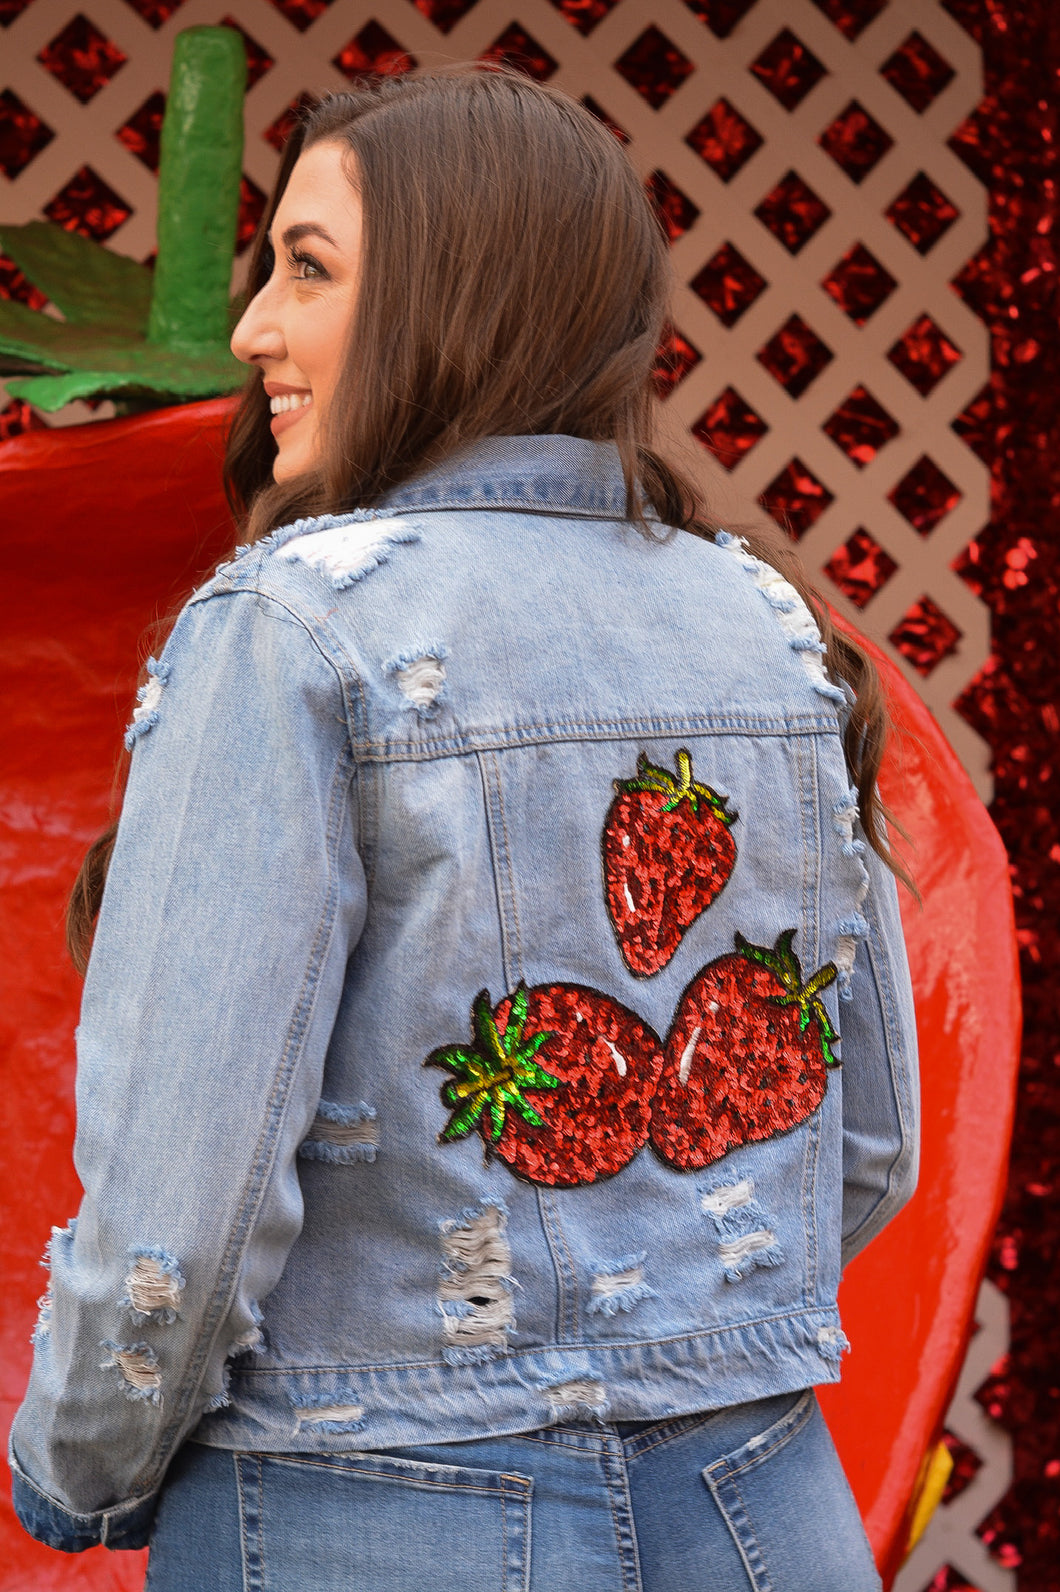 The Glam Red Berry Jacket